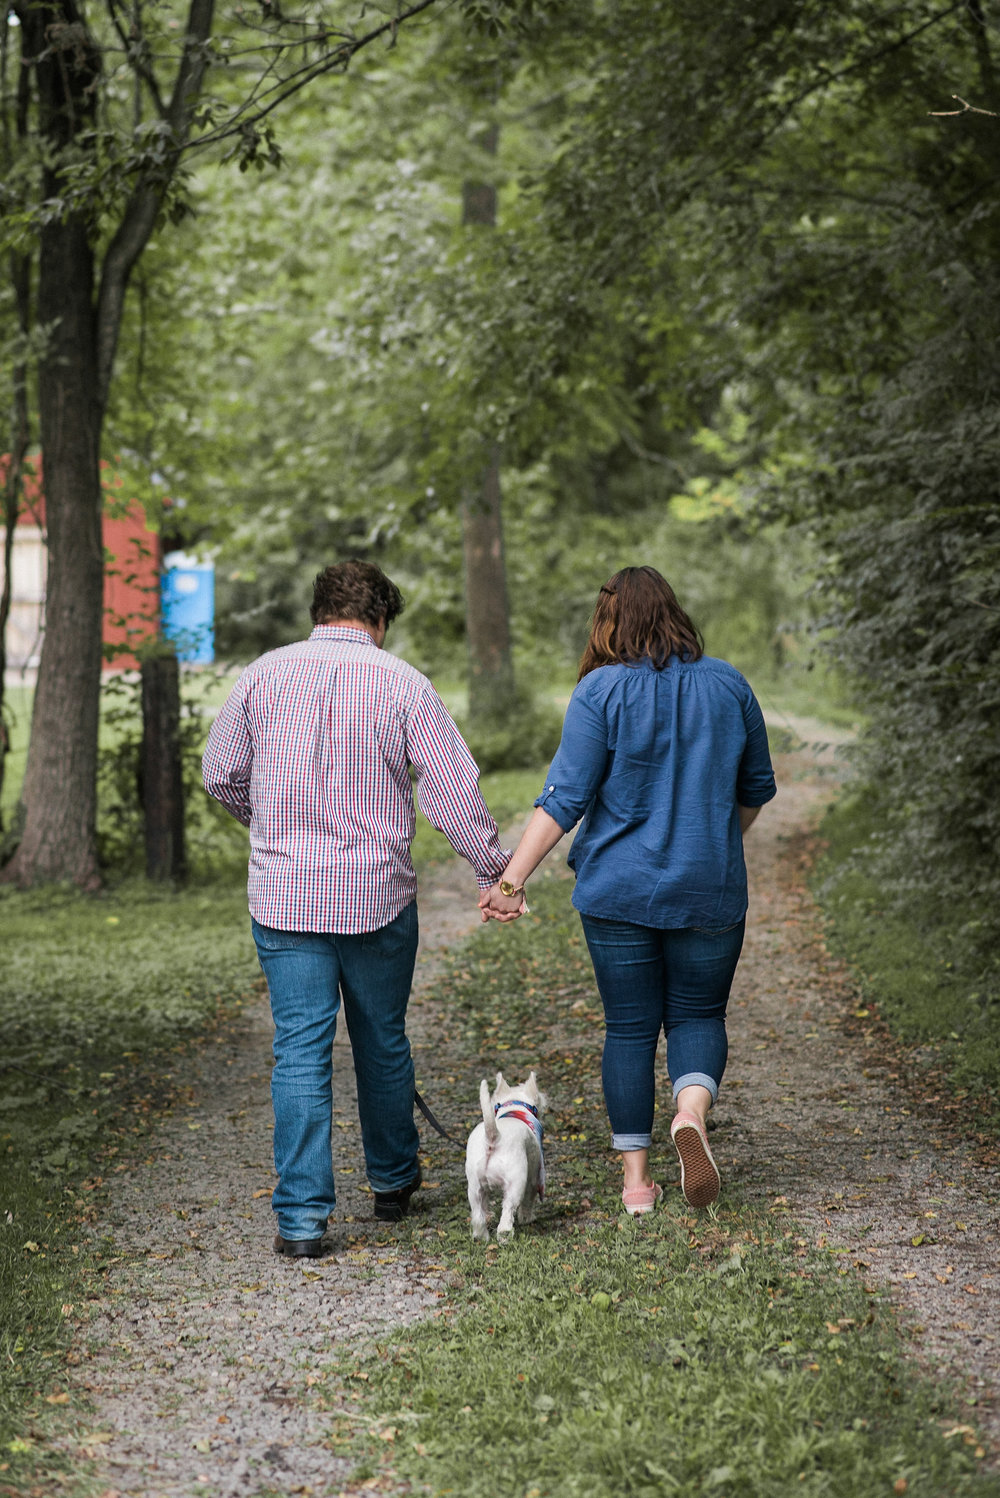 Couple walking away with dog